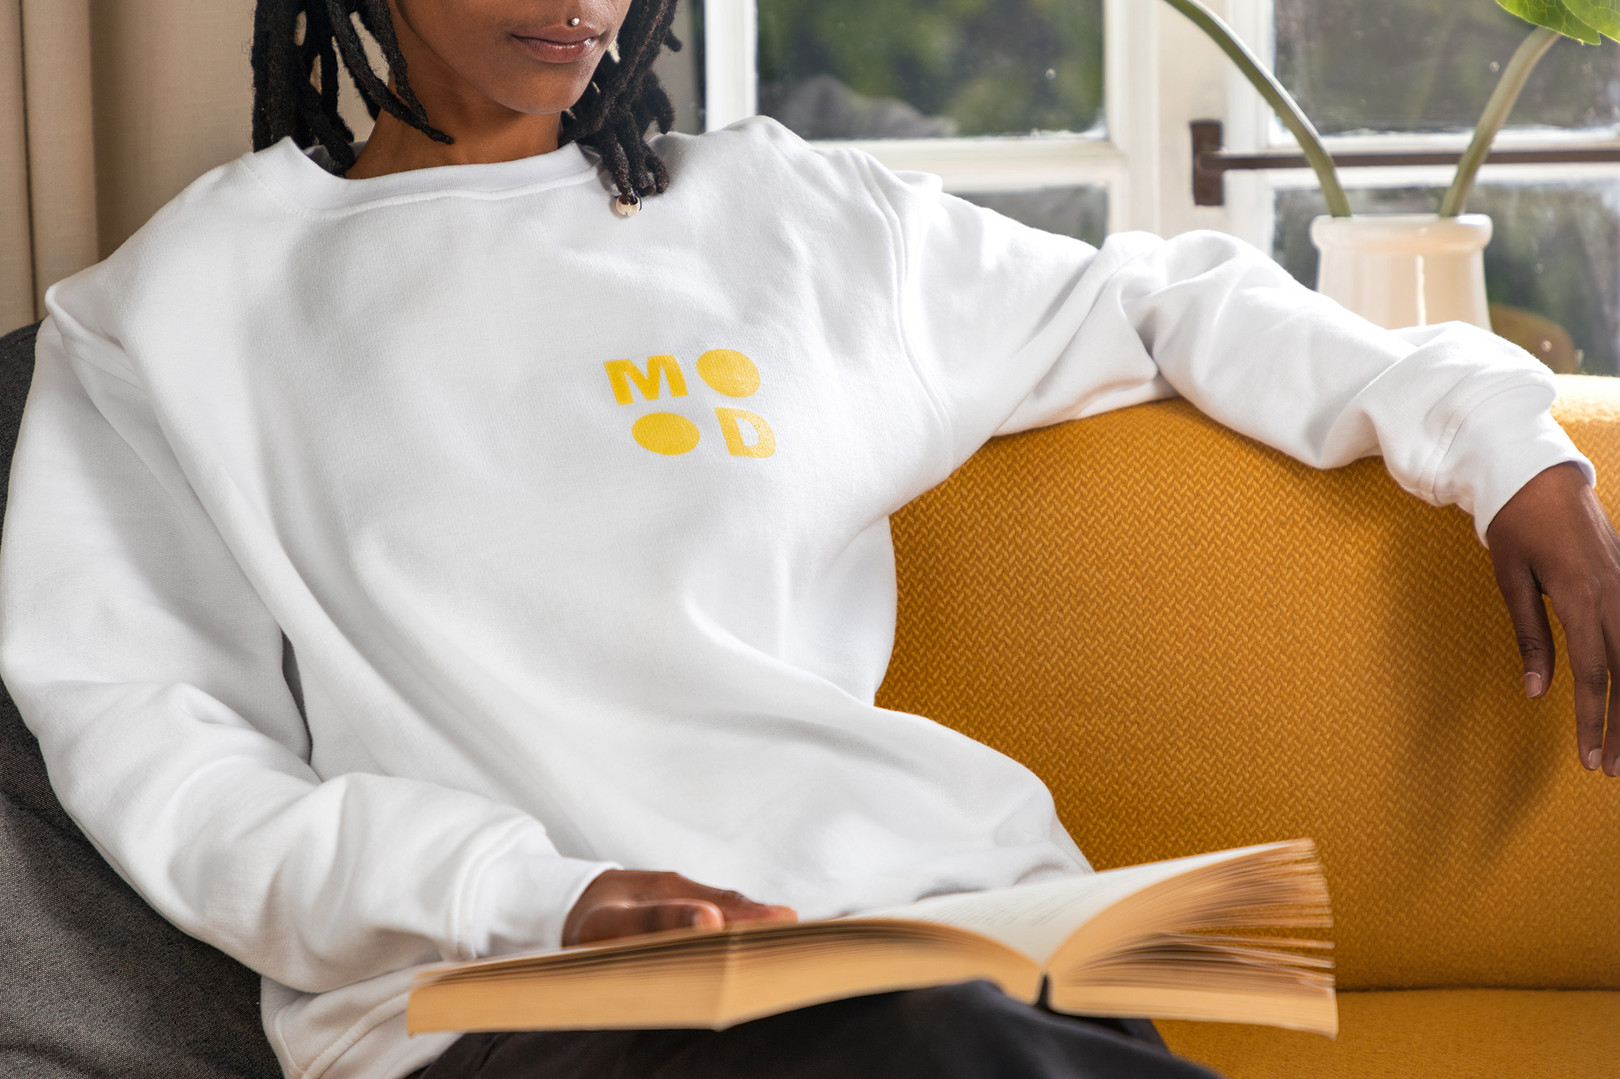 MOOD Gin Merch Crewneck